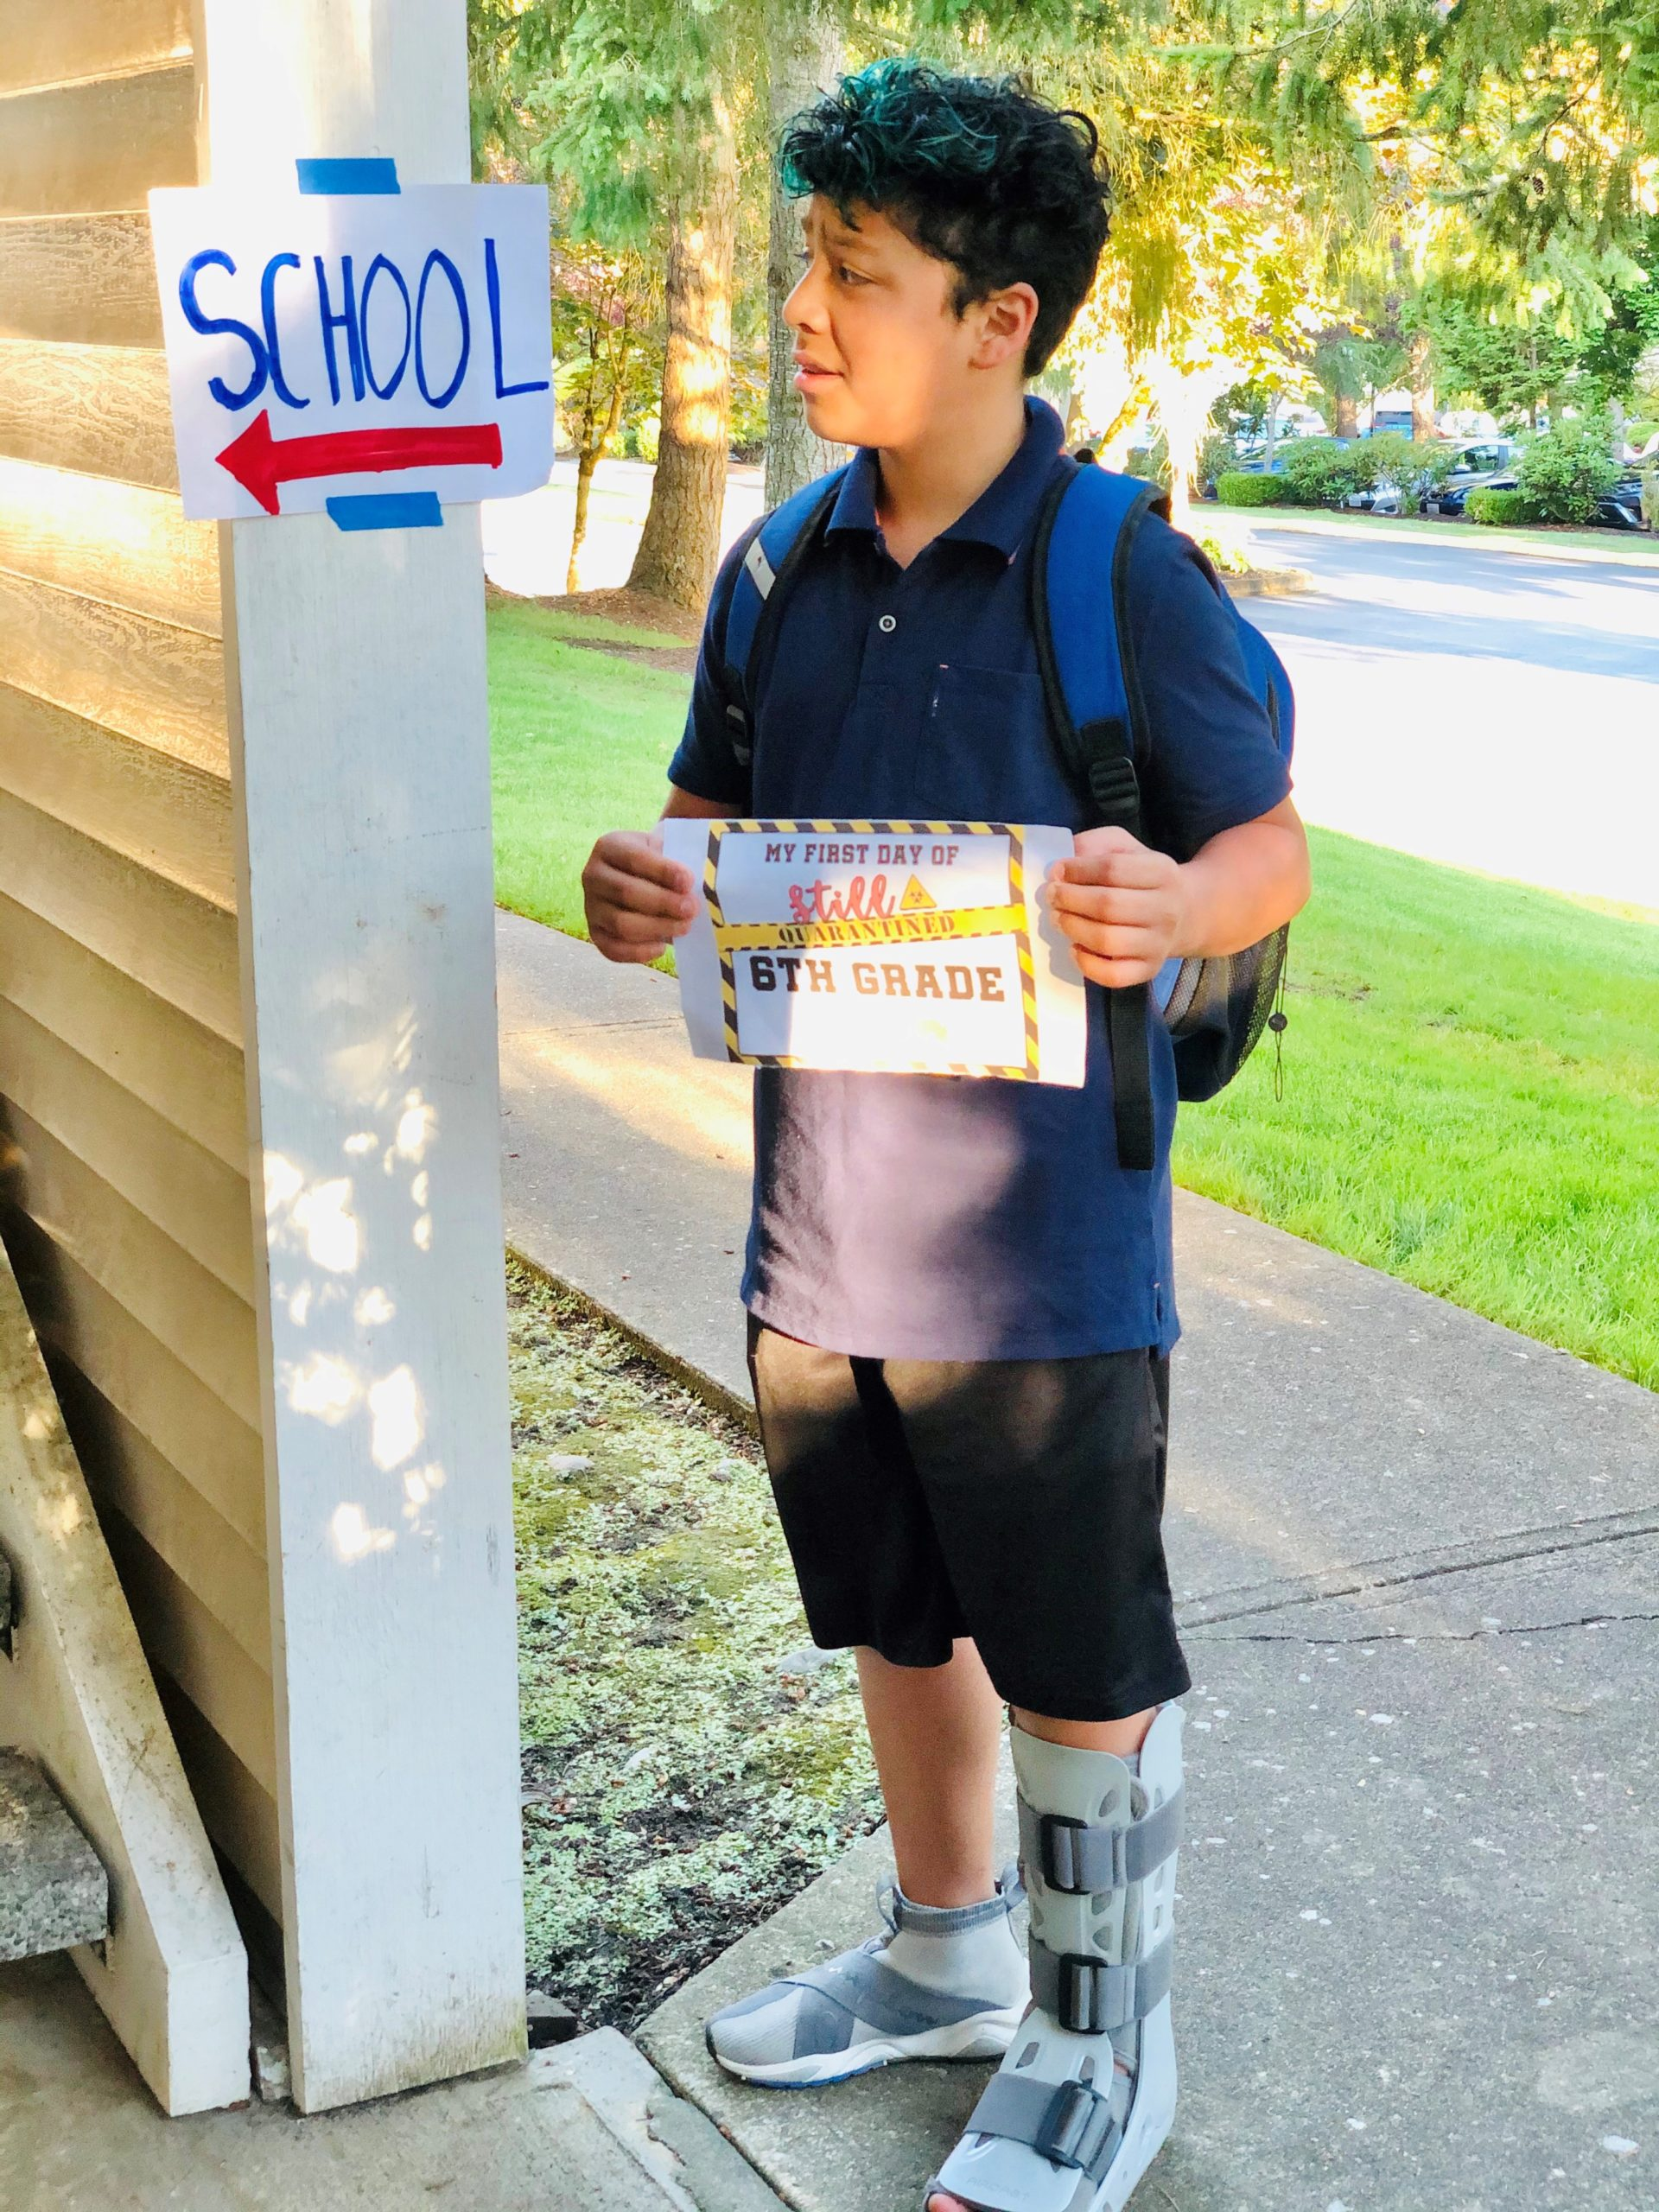 a student looking at a sign that say school